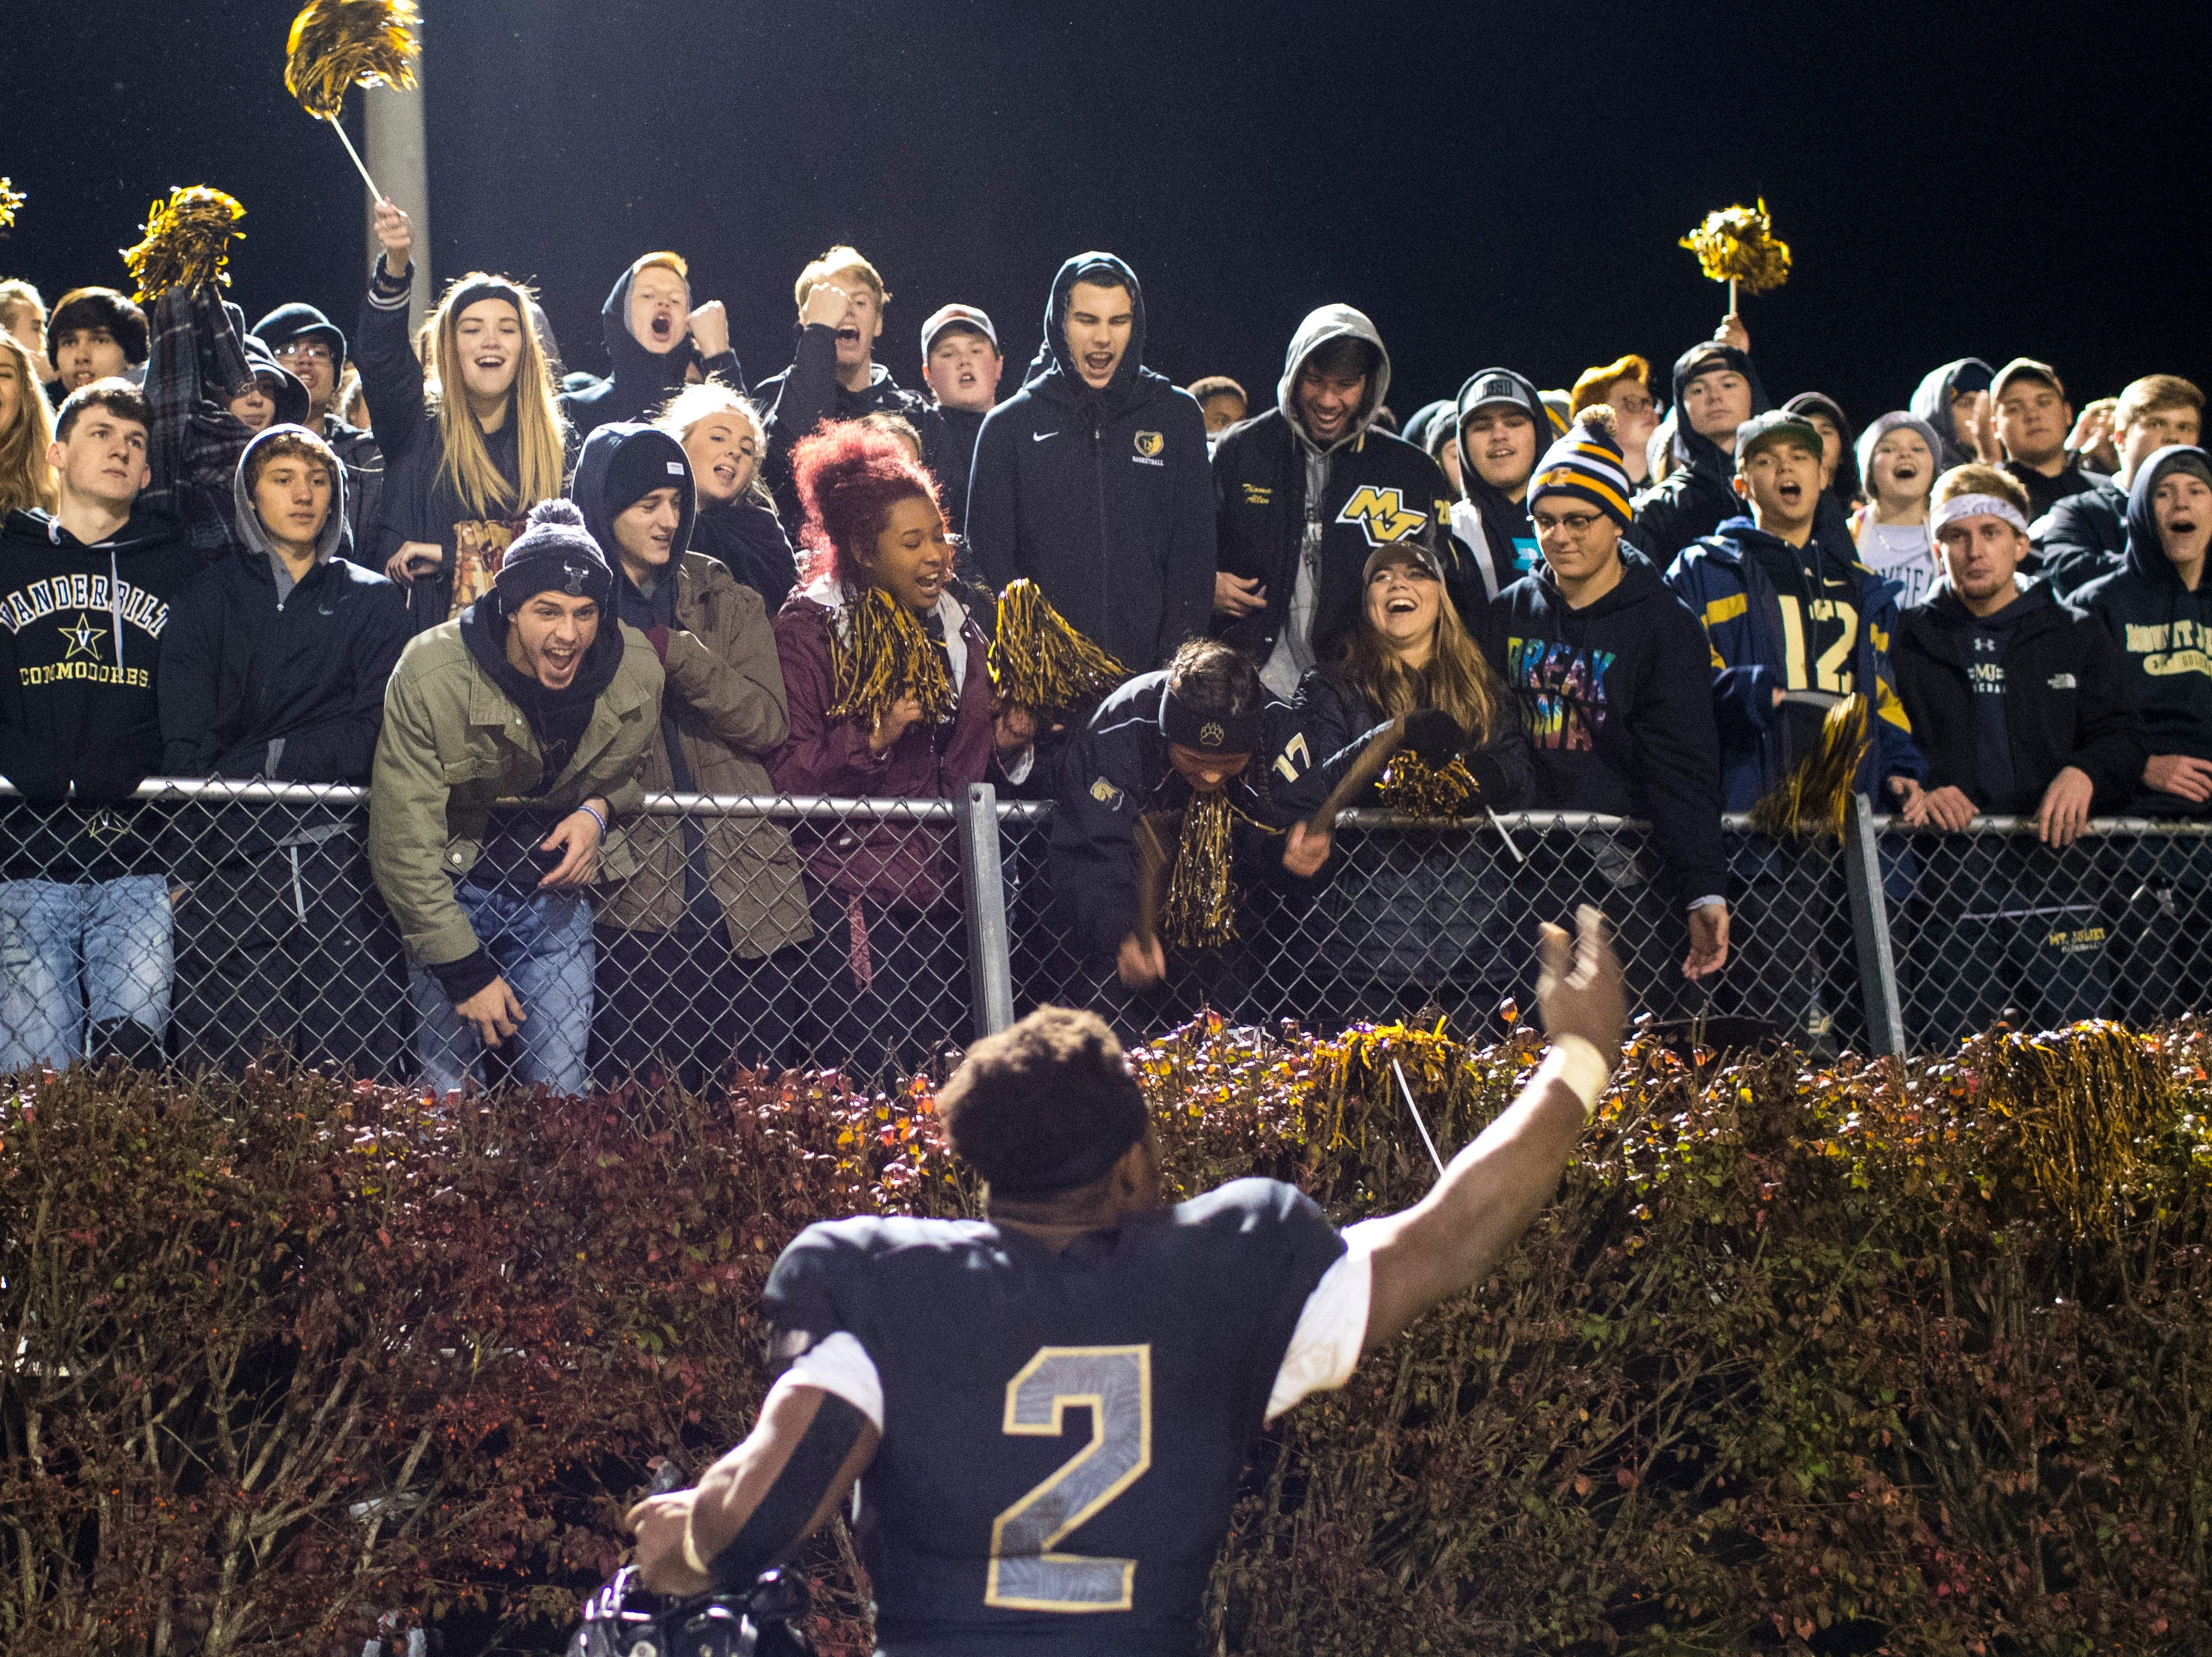 Mt. Juliet's Marcello Walton (2) tries to hype up the Mt. Juliet student section during Mt. Juliet's game against Blackman at Mt. Juliet High School in Mt. Juliet on Friday, Nov. 9, 2018.